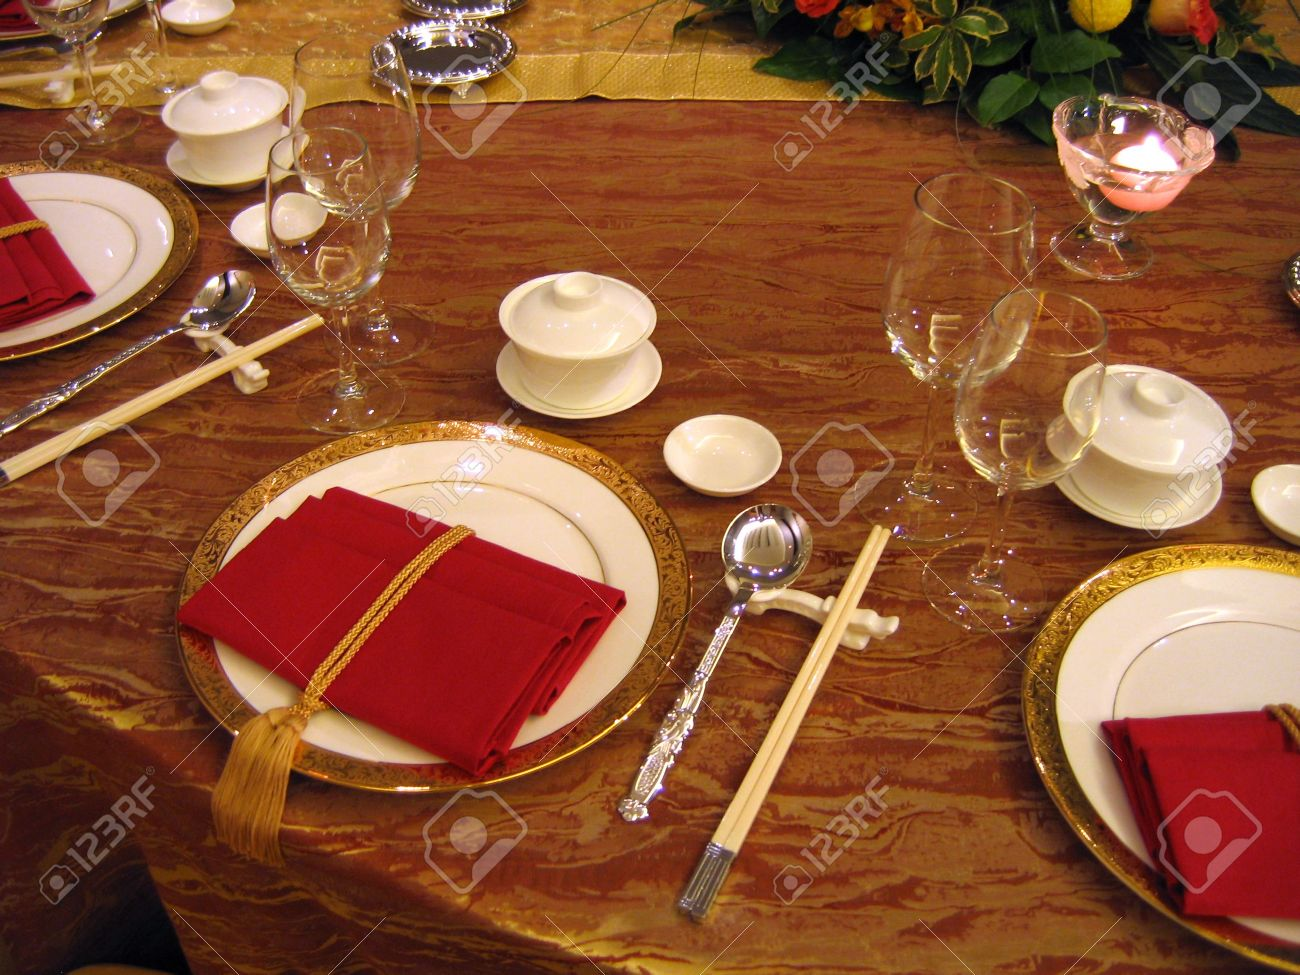 Chinese wedding banquet table setting Stock Photo - 588257 & Chinese Wedding Banquet Table Setting Stock Photo Picture And ...